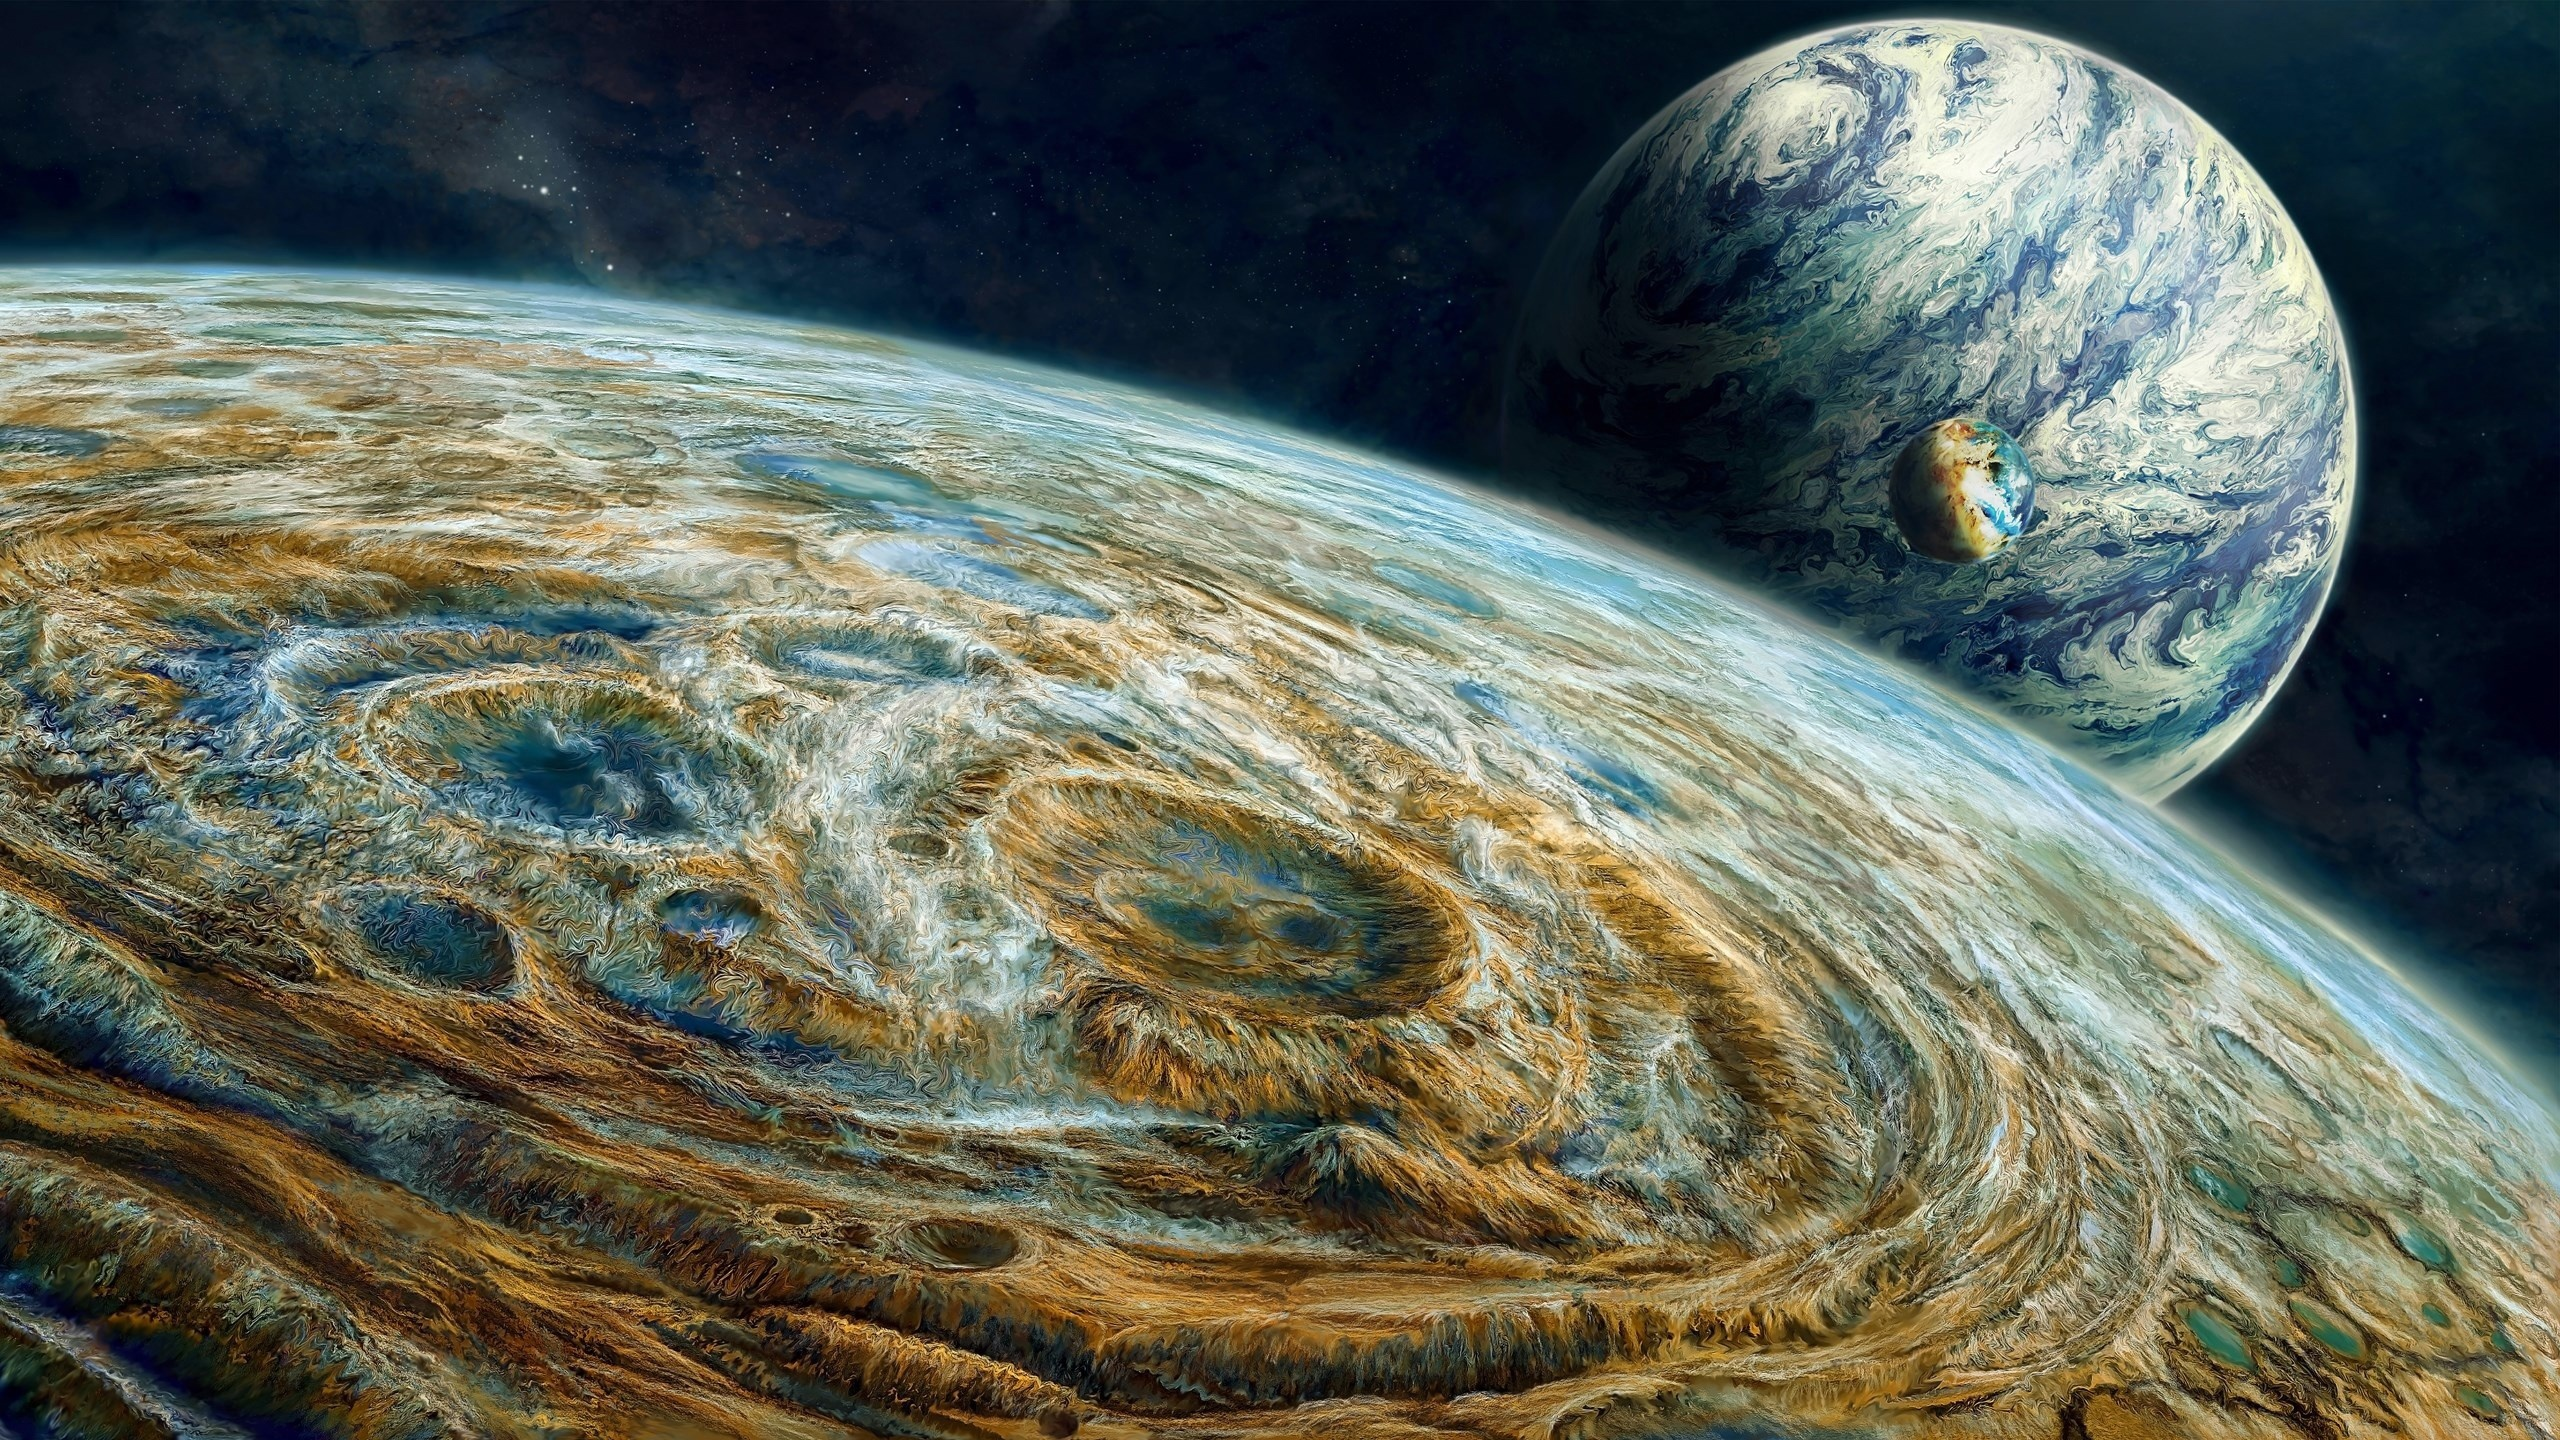 Wallpaper three planets in the space creative painting - Space 2560 x 1440 ...